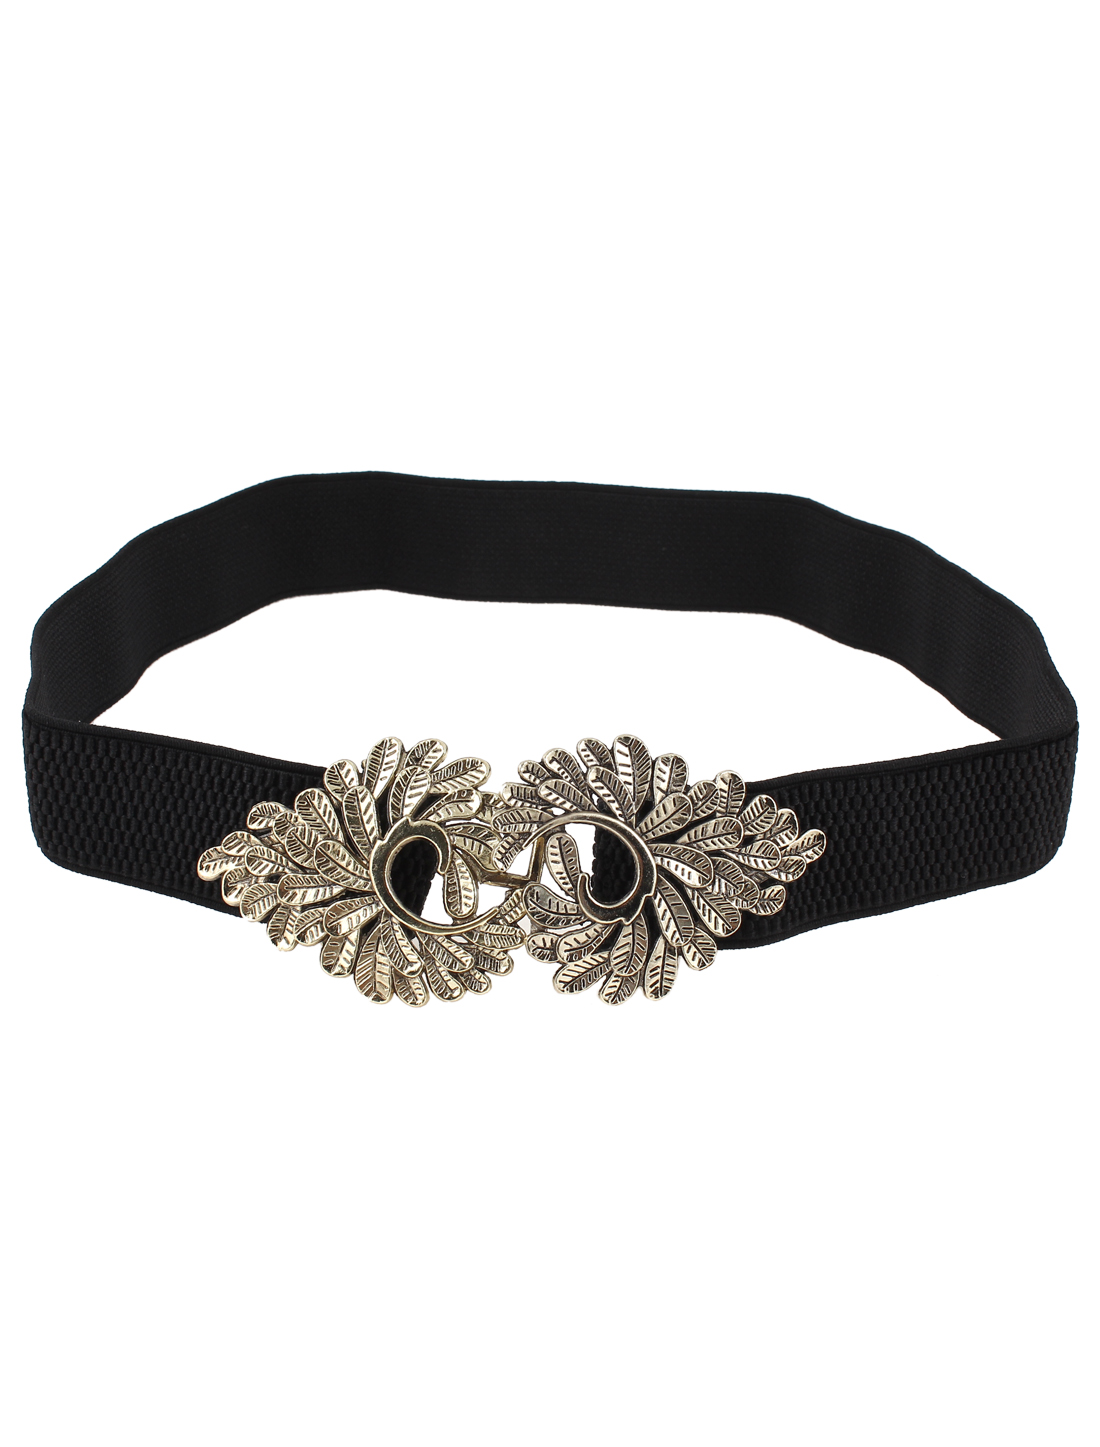 Woman Metal Leaf Shaped Adorning Interlocking Buckle Elastic Waistband Belt